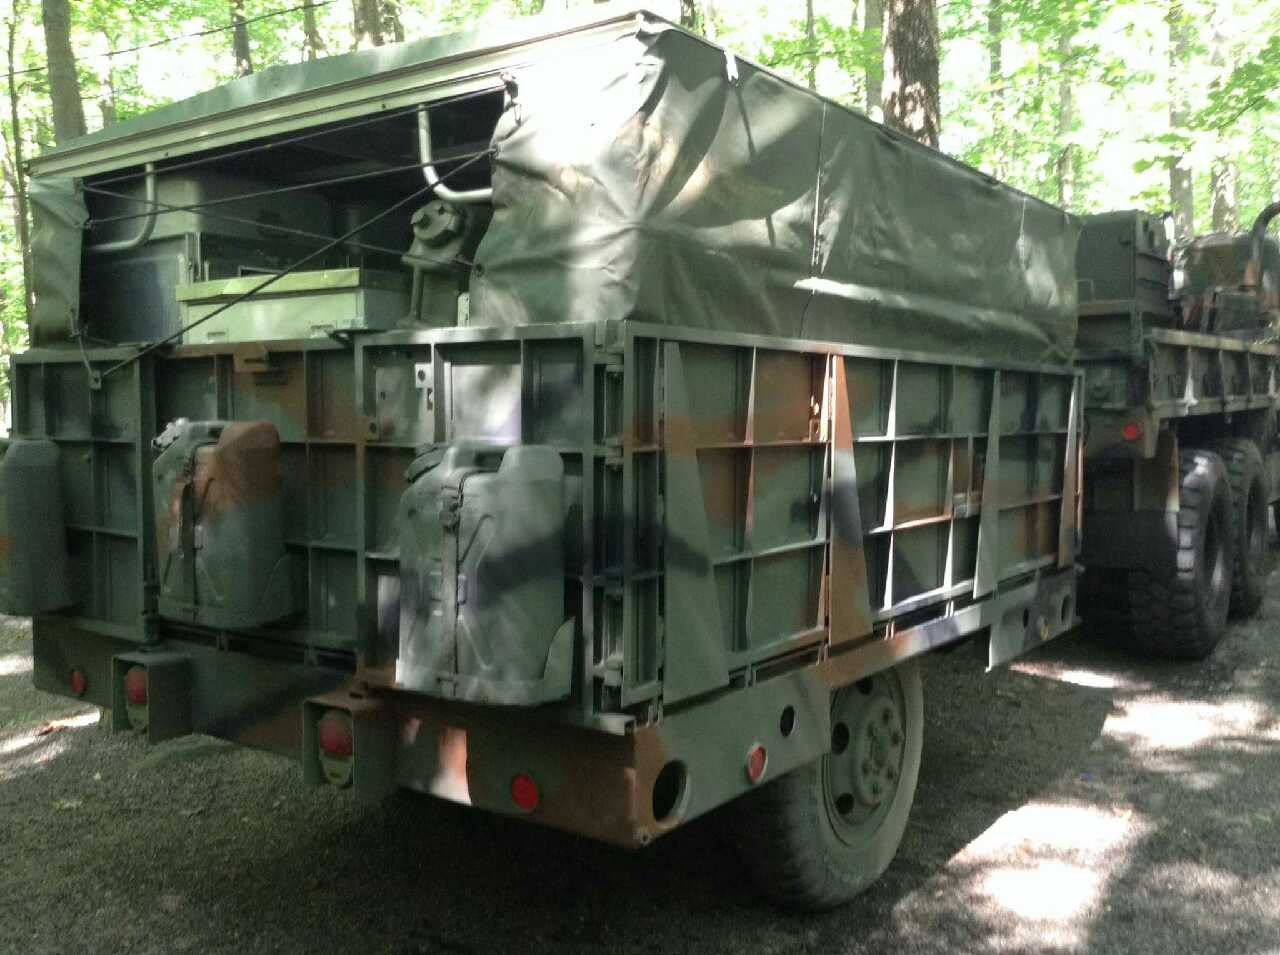 letgo mkt us army mobile kitchen tr in college hill pa